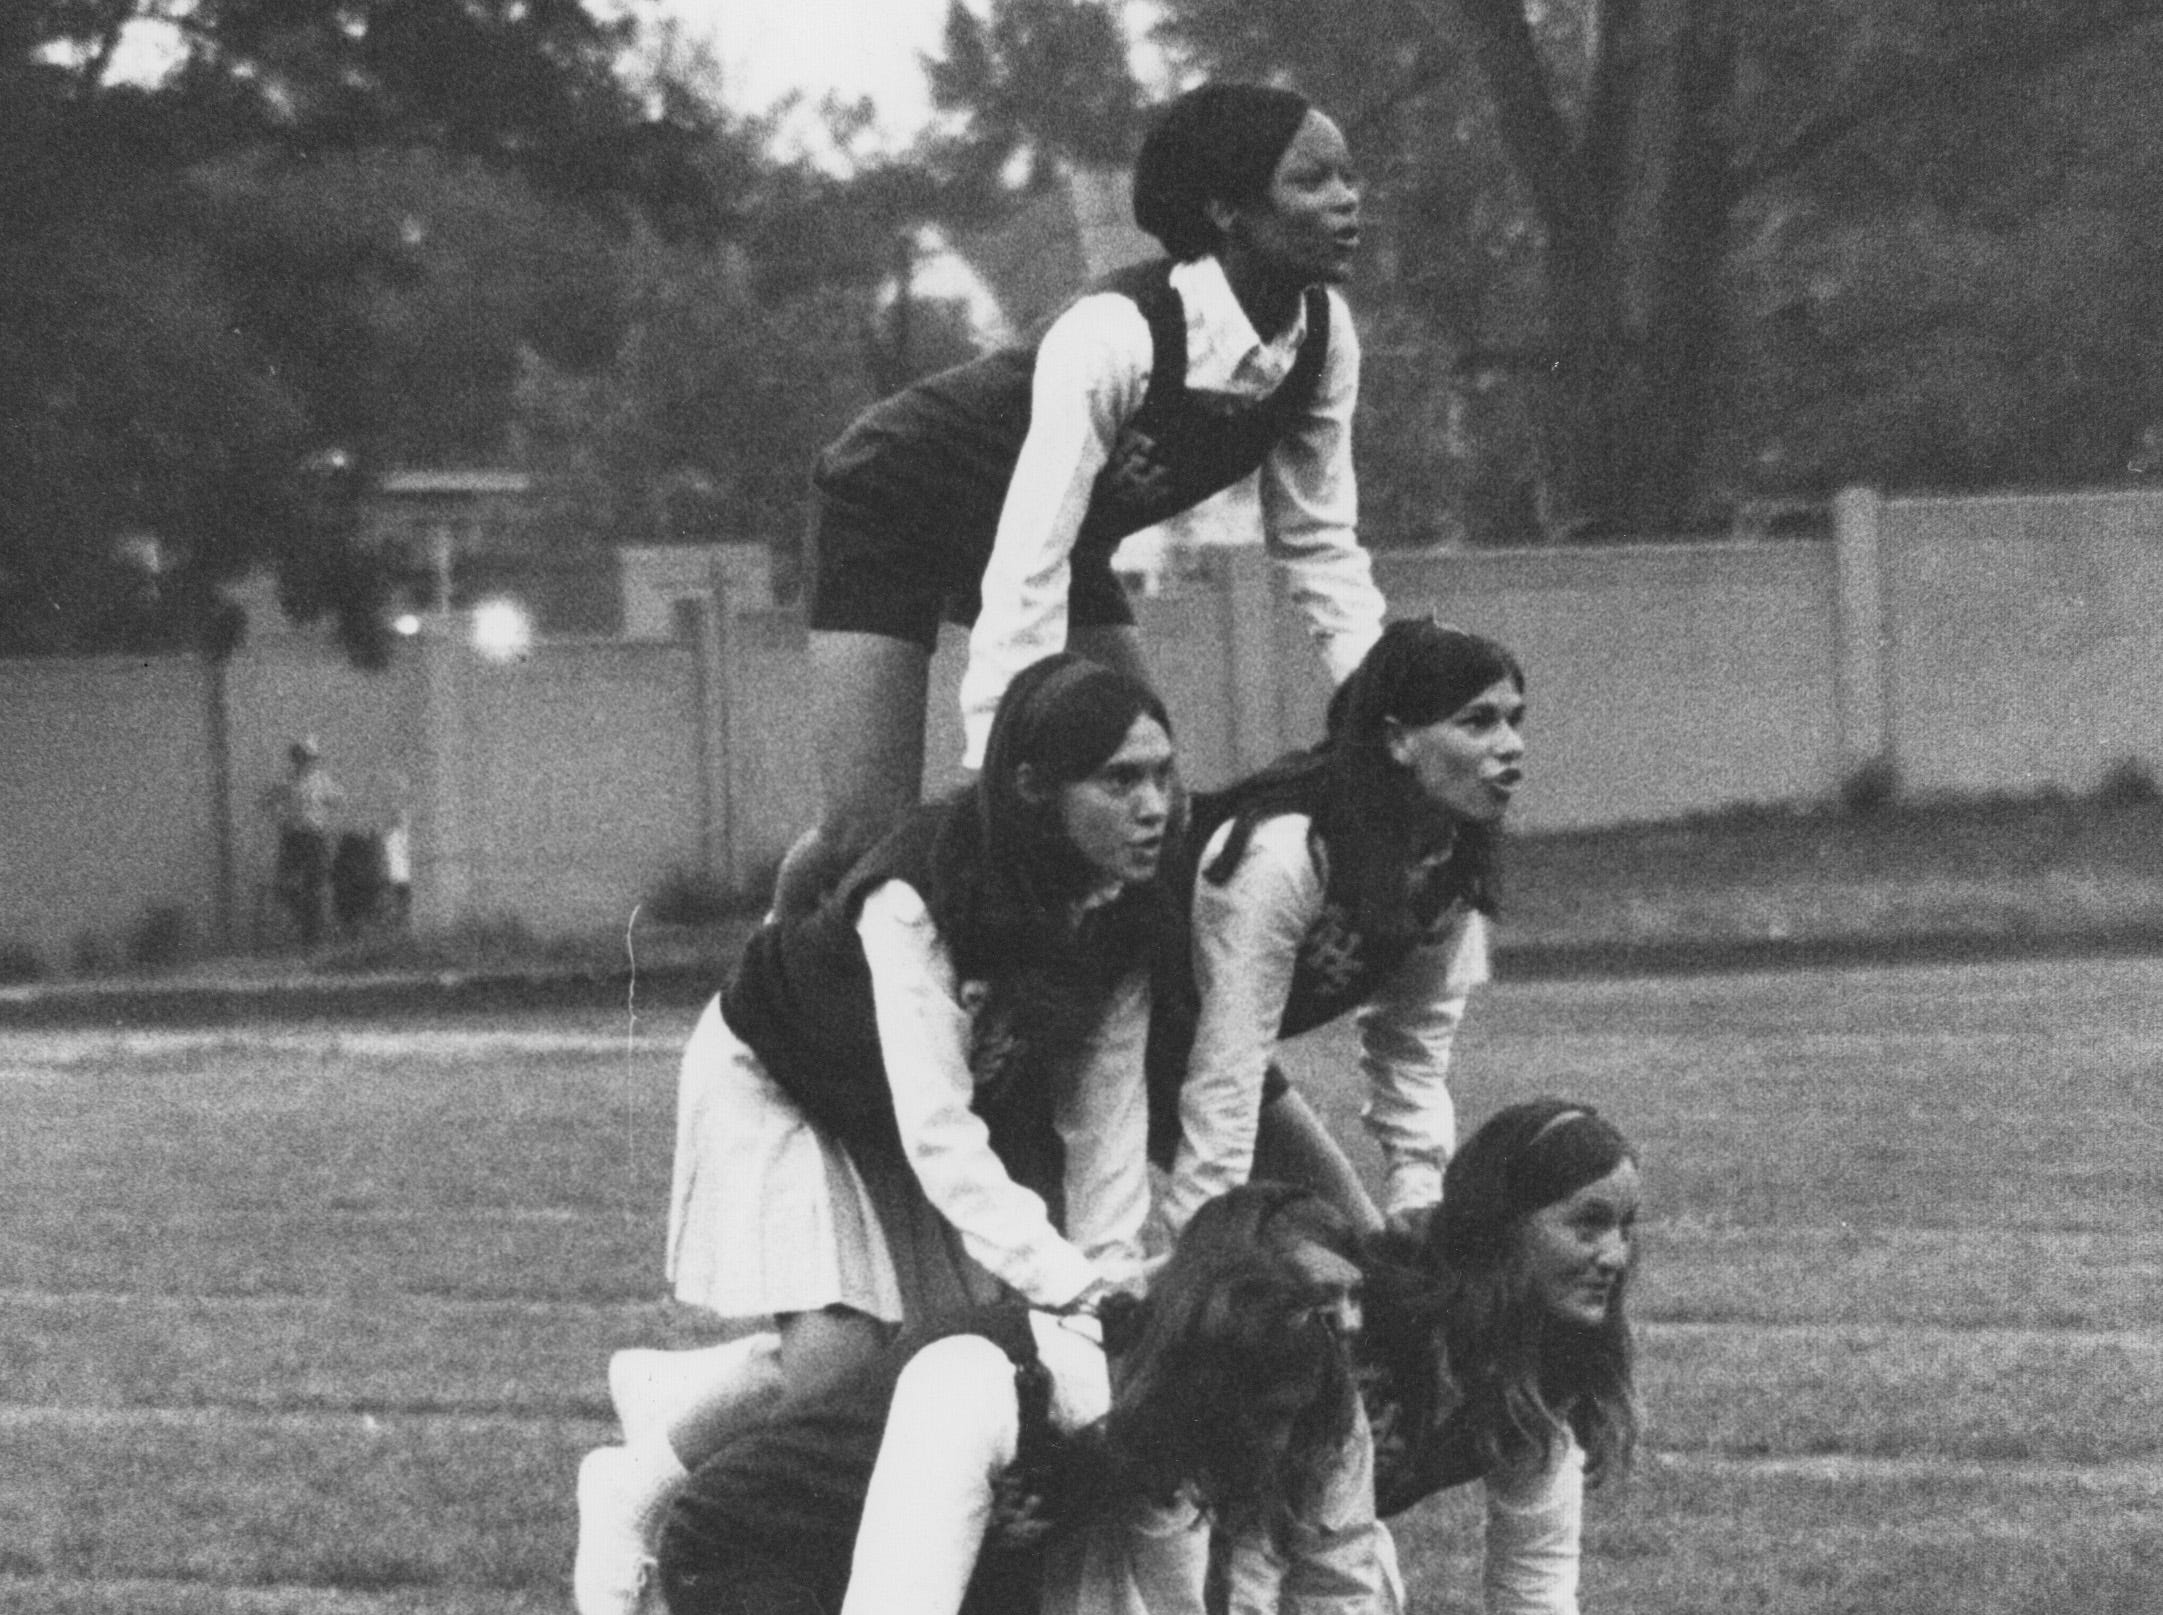 Arsenal Tech cheerleaders form a pyramid at the Tech-Howe football game at Howe on Sept. 5, 1969. The Titans lost to Howe's Hornets, 24-15.